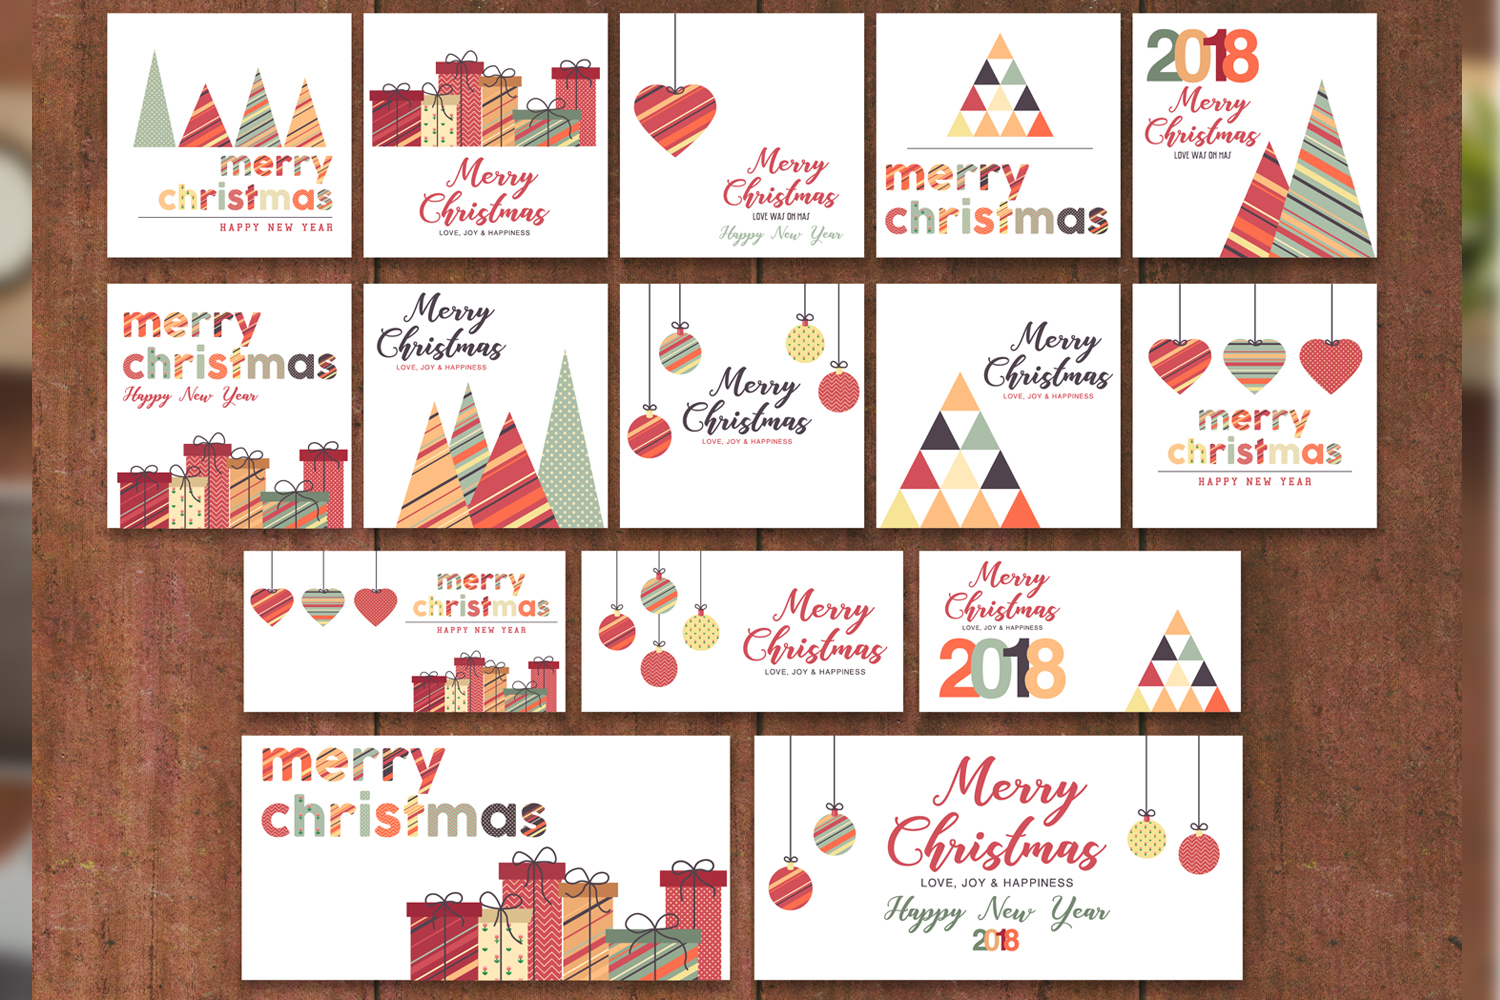 Christmas Greeting Cards & Posters example image 2